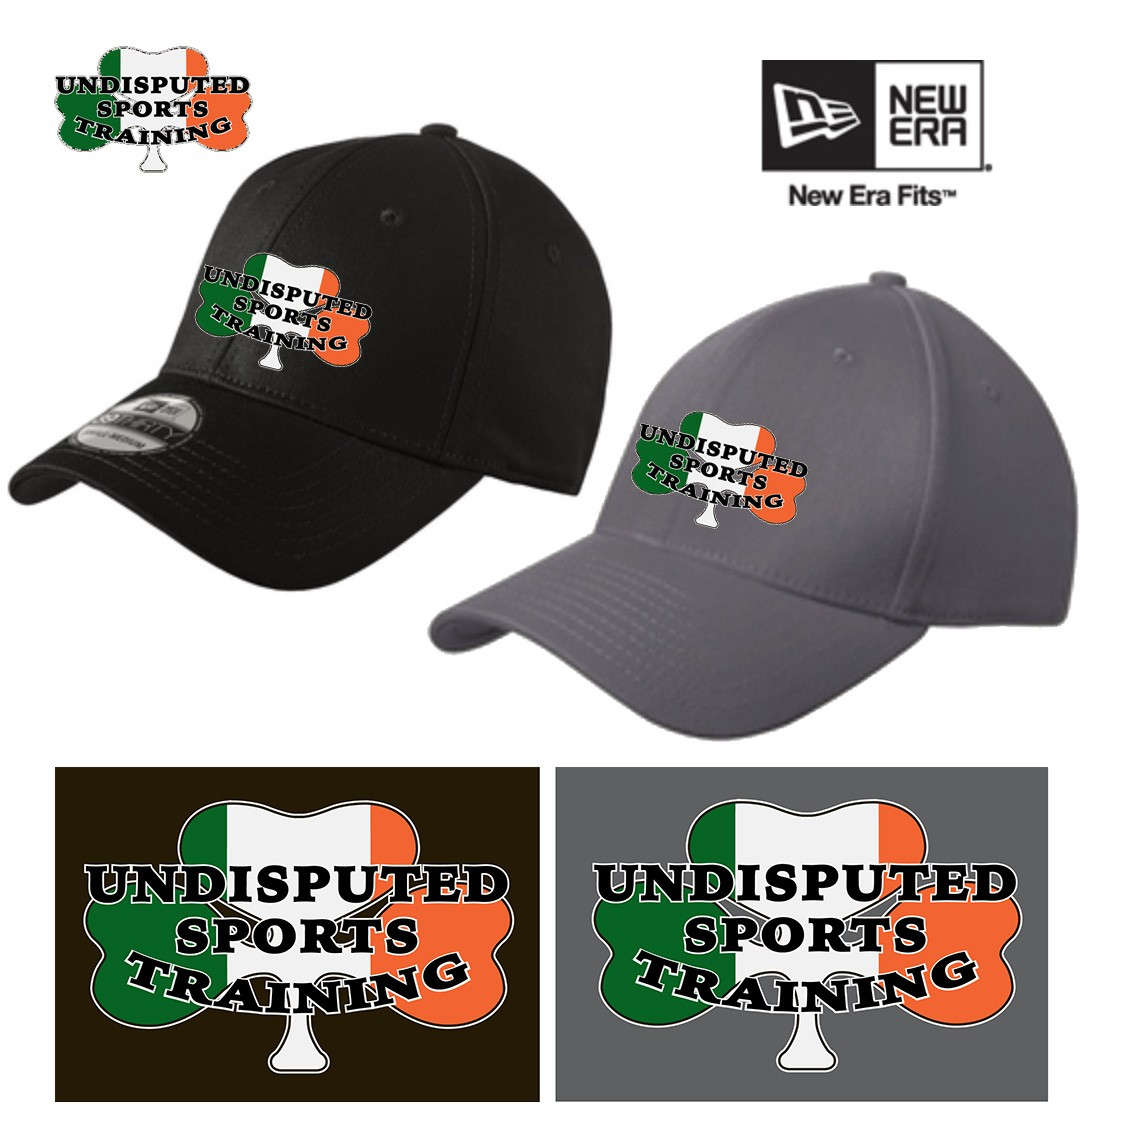 Undisputed Sports Training New Era® - Structured Stretch Cotton Cap, Fitted/Sizes, NE1000